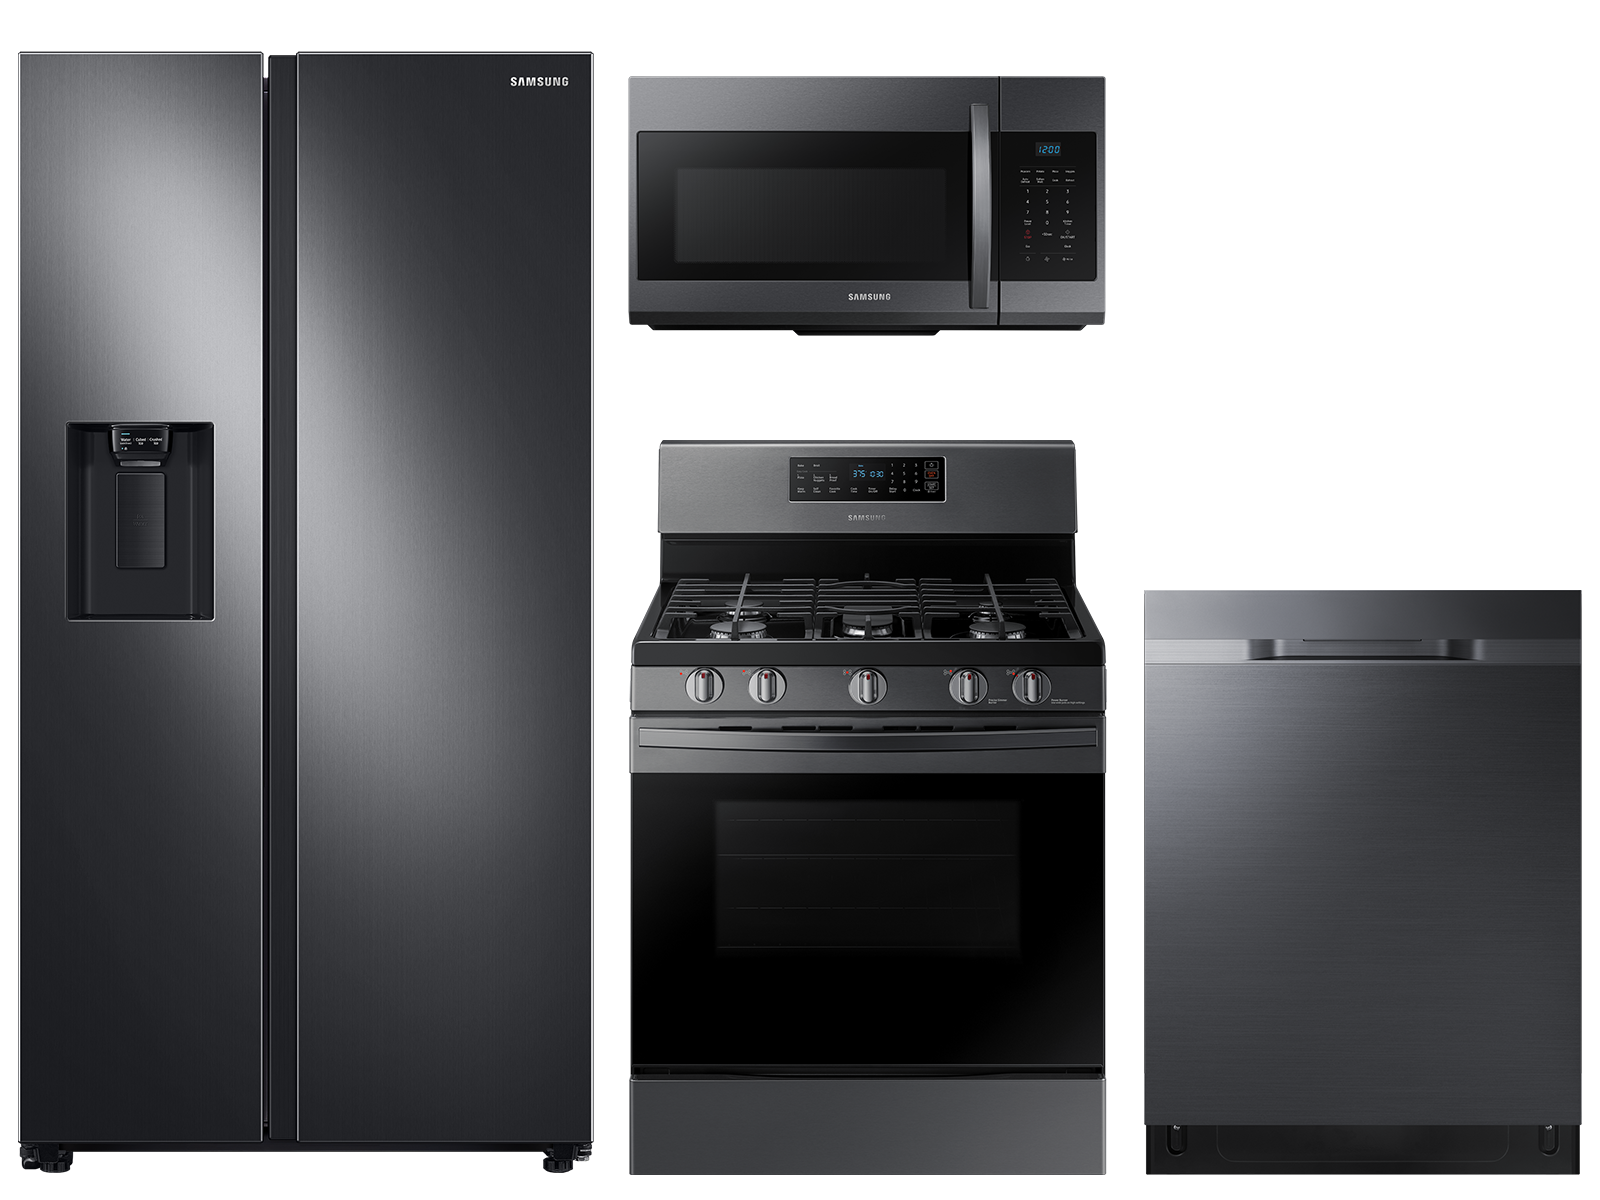 Samsung Large capacity Side-by-Side refrigerator & gas range package in black stainless